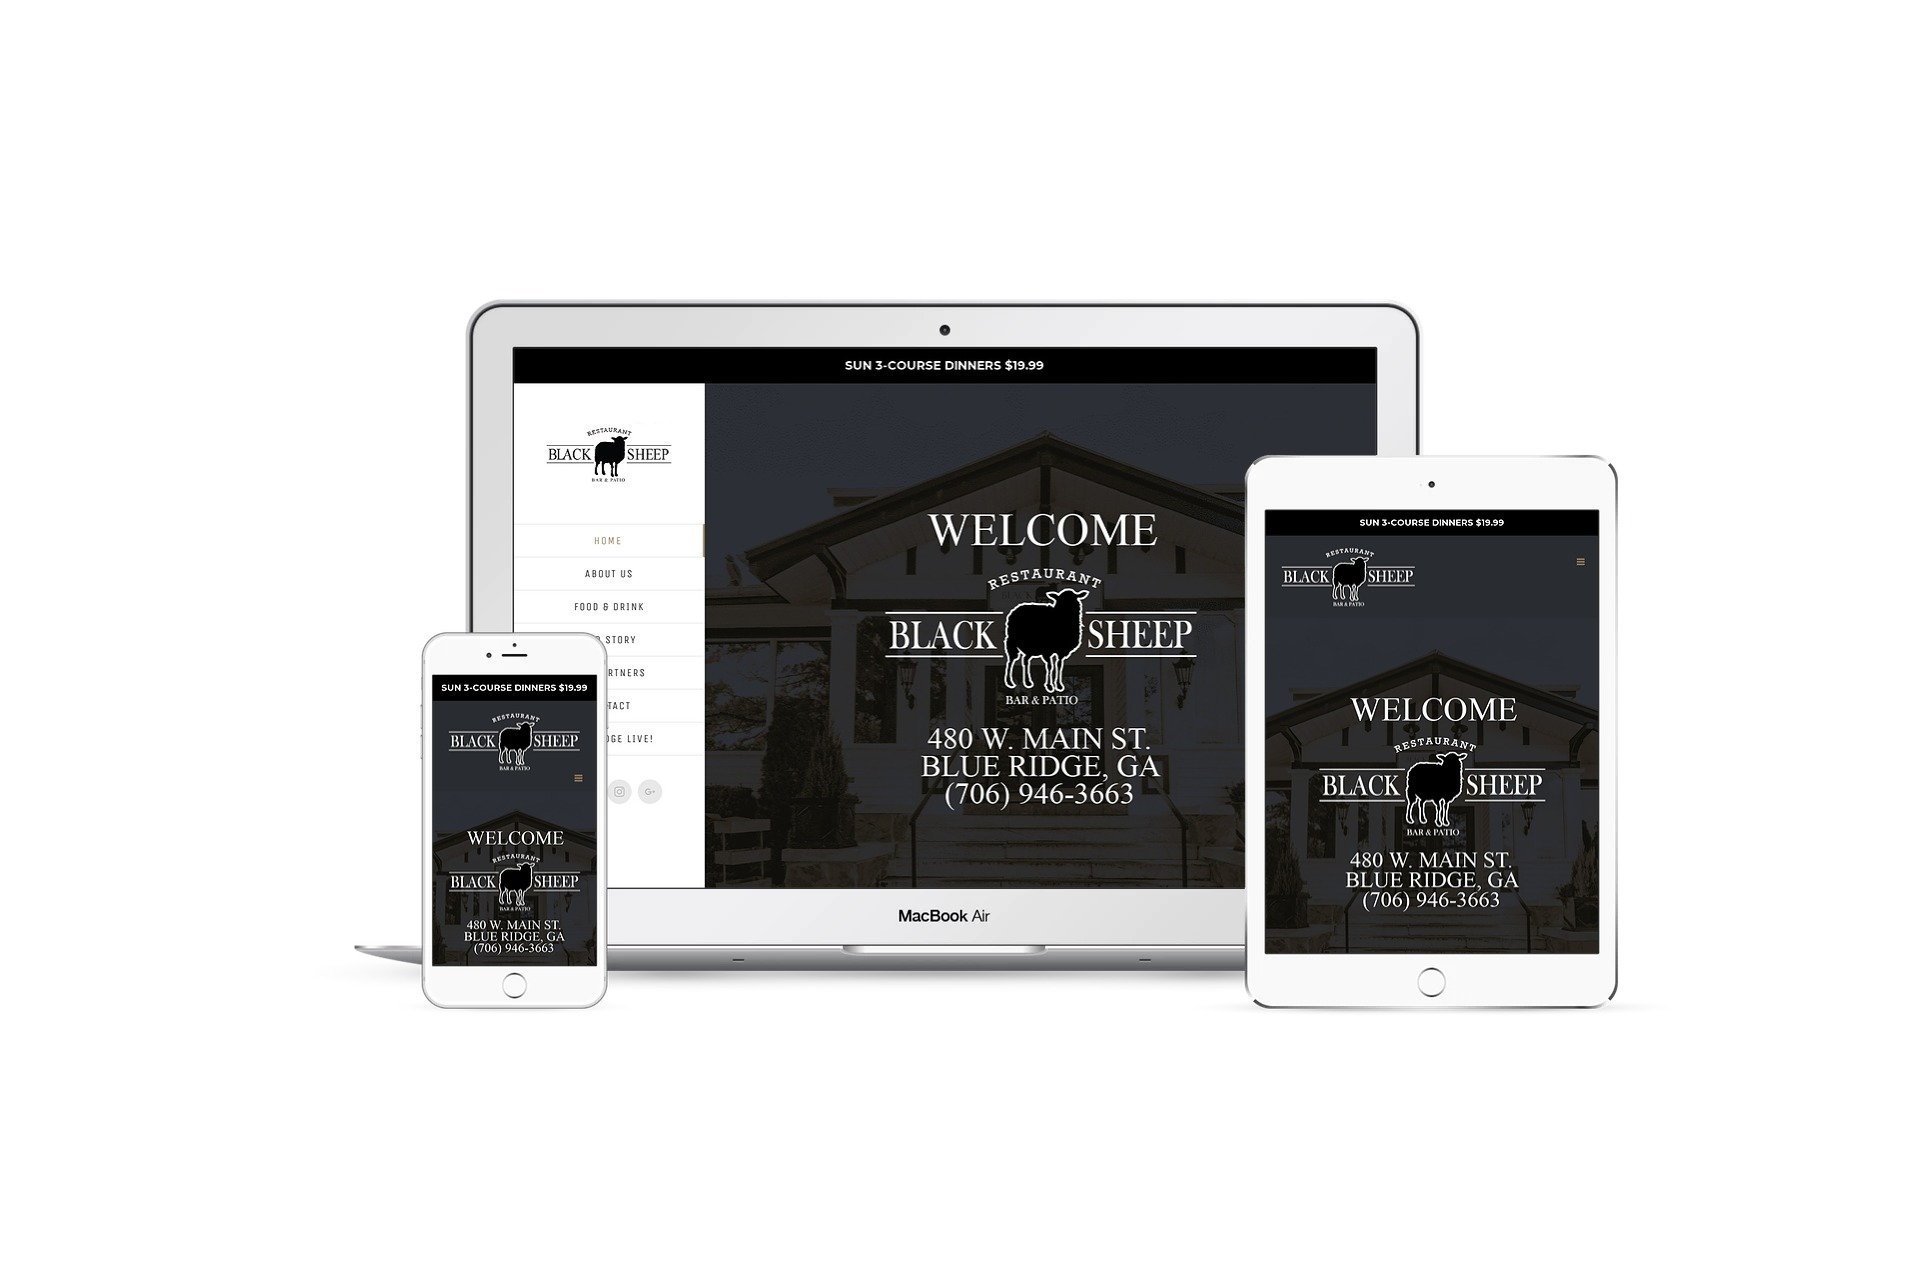 Black Sheep Blue Ridge - home page on multiple screen